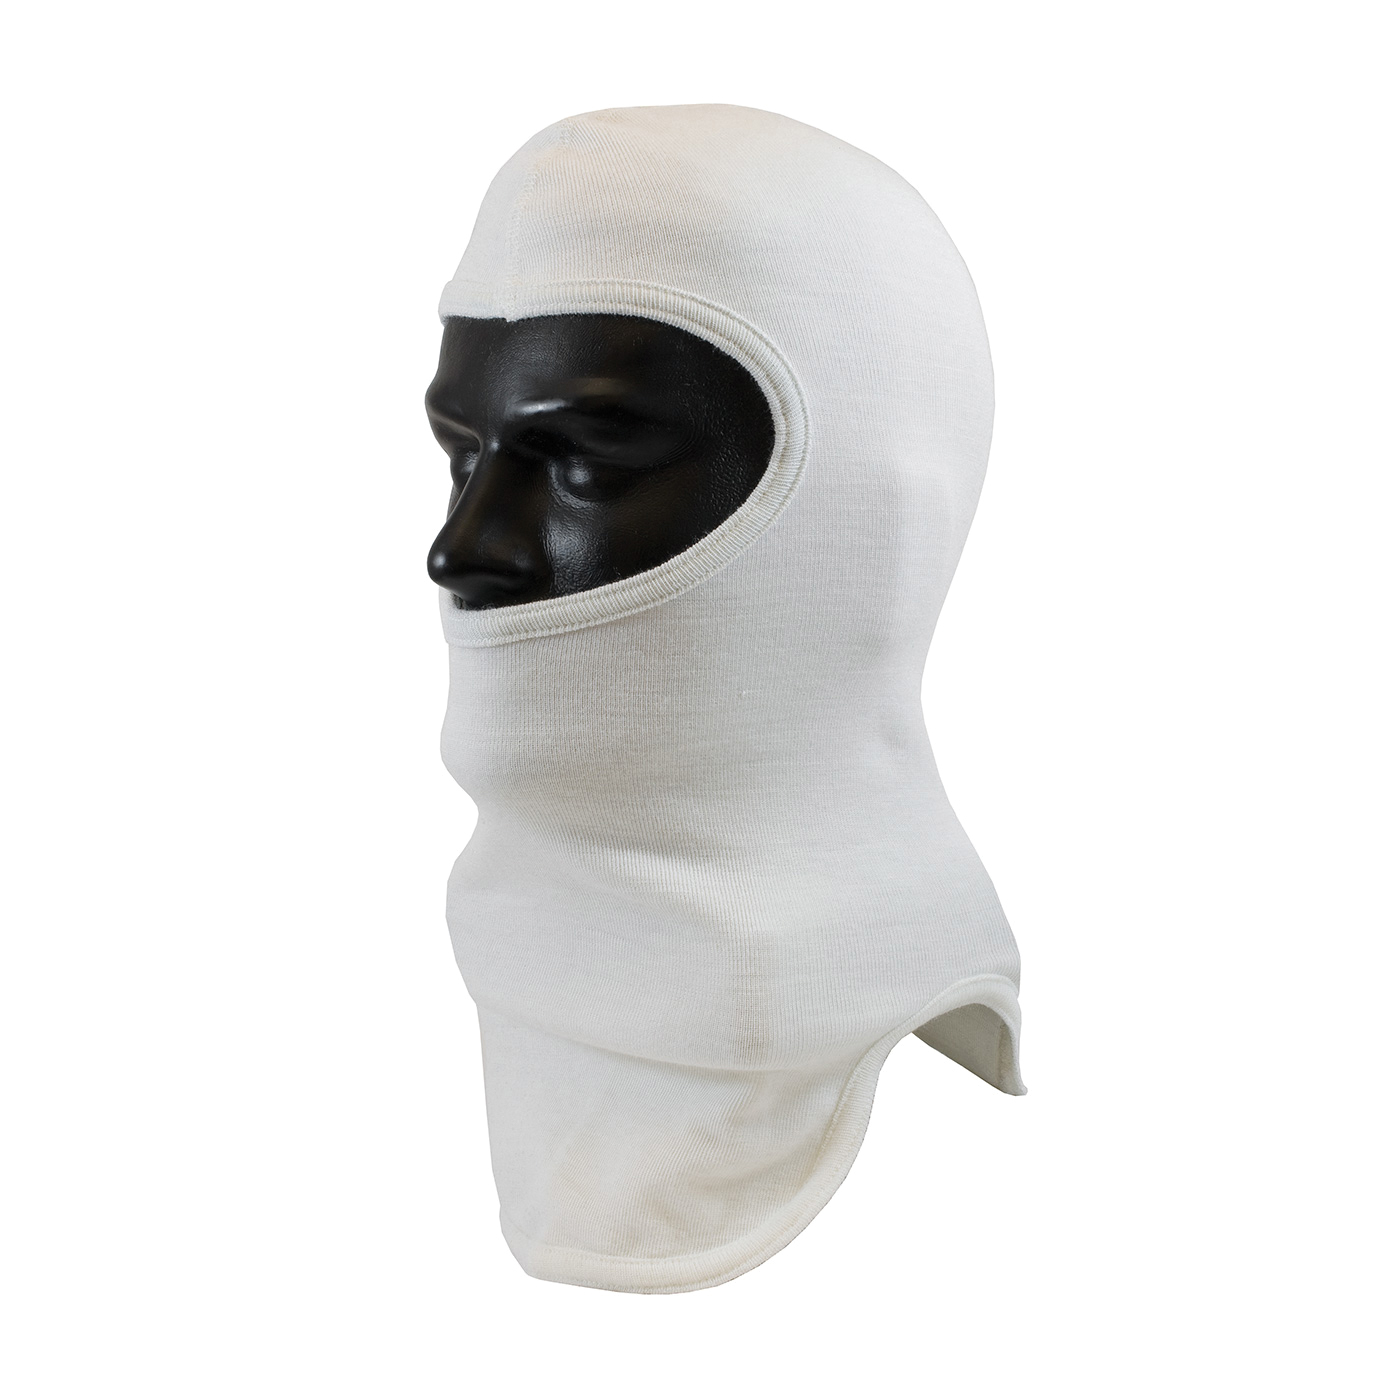 PIP® 906-100NOM7 Double Layer Fire Resistant Hood With Bib, Universal, White, 18 in L, Nomex®, 2 oz Fabric, Tri-Cut Full Face Closure